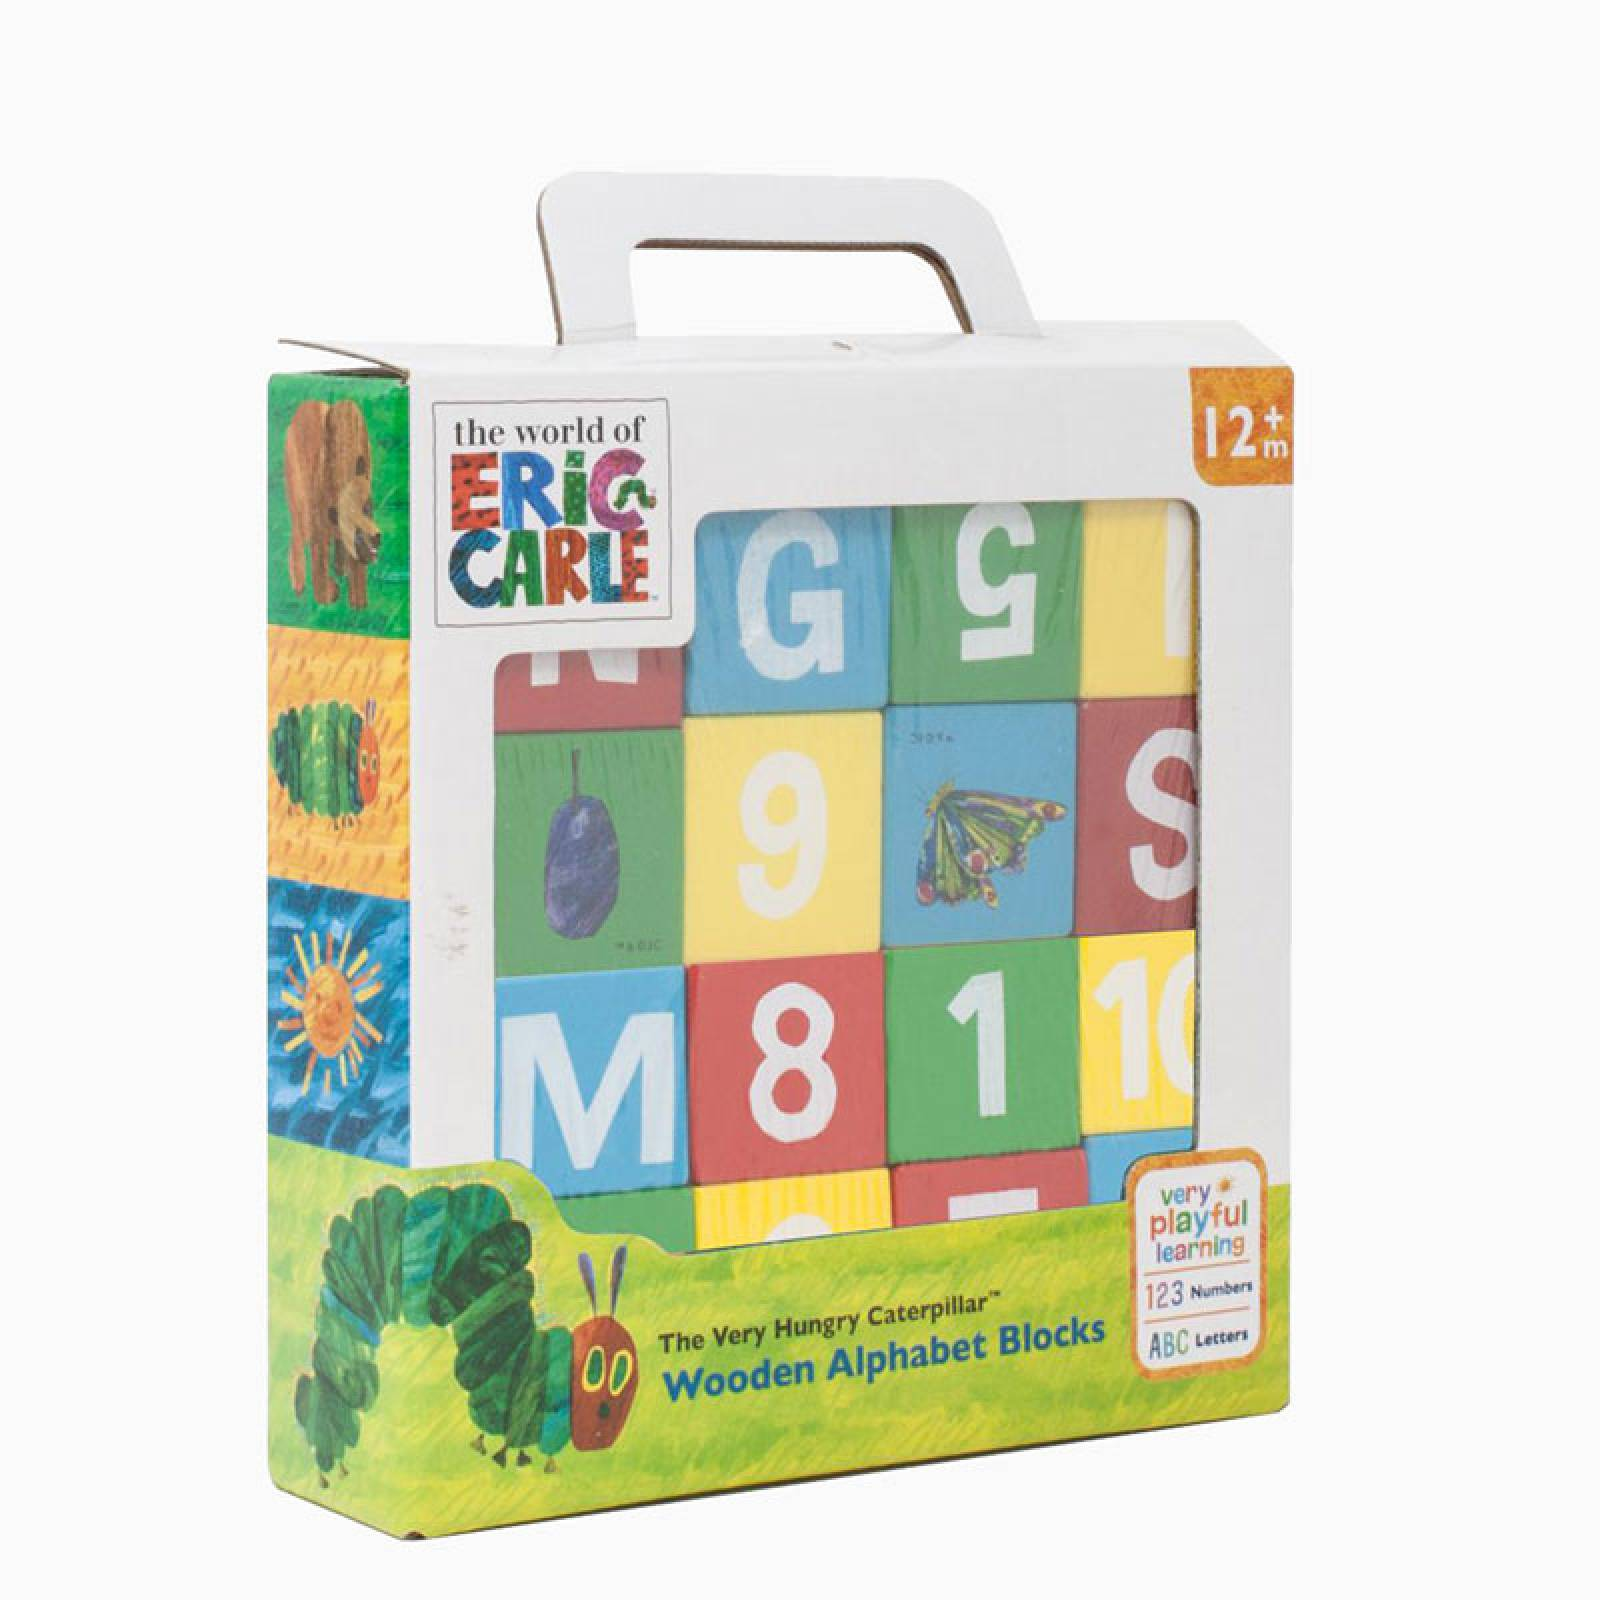 The Very Hungry Caterpillar Wooden Picture Blocks 1+